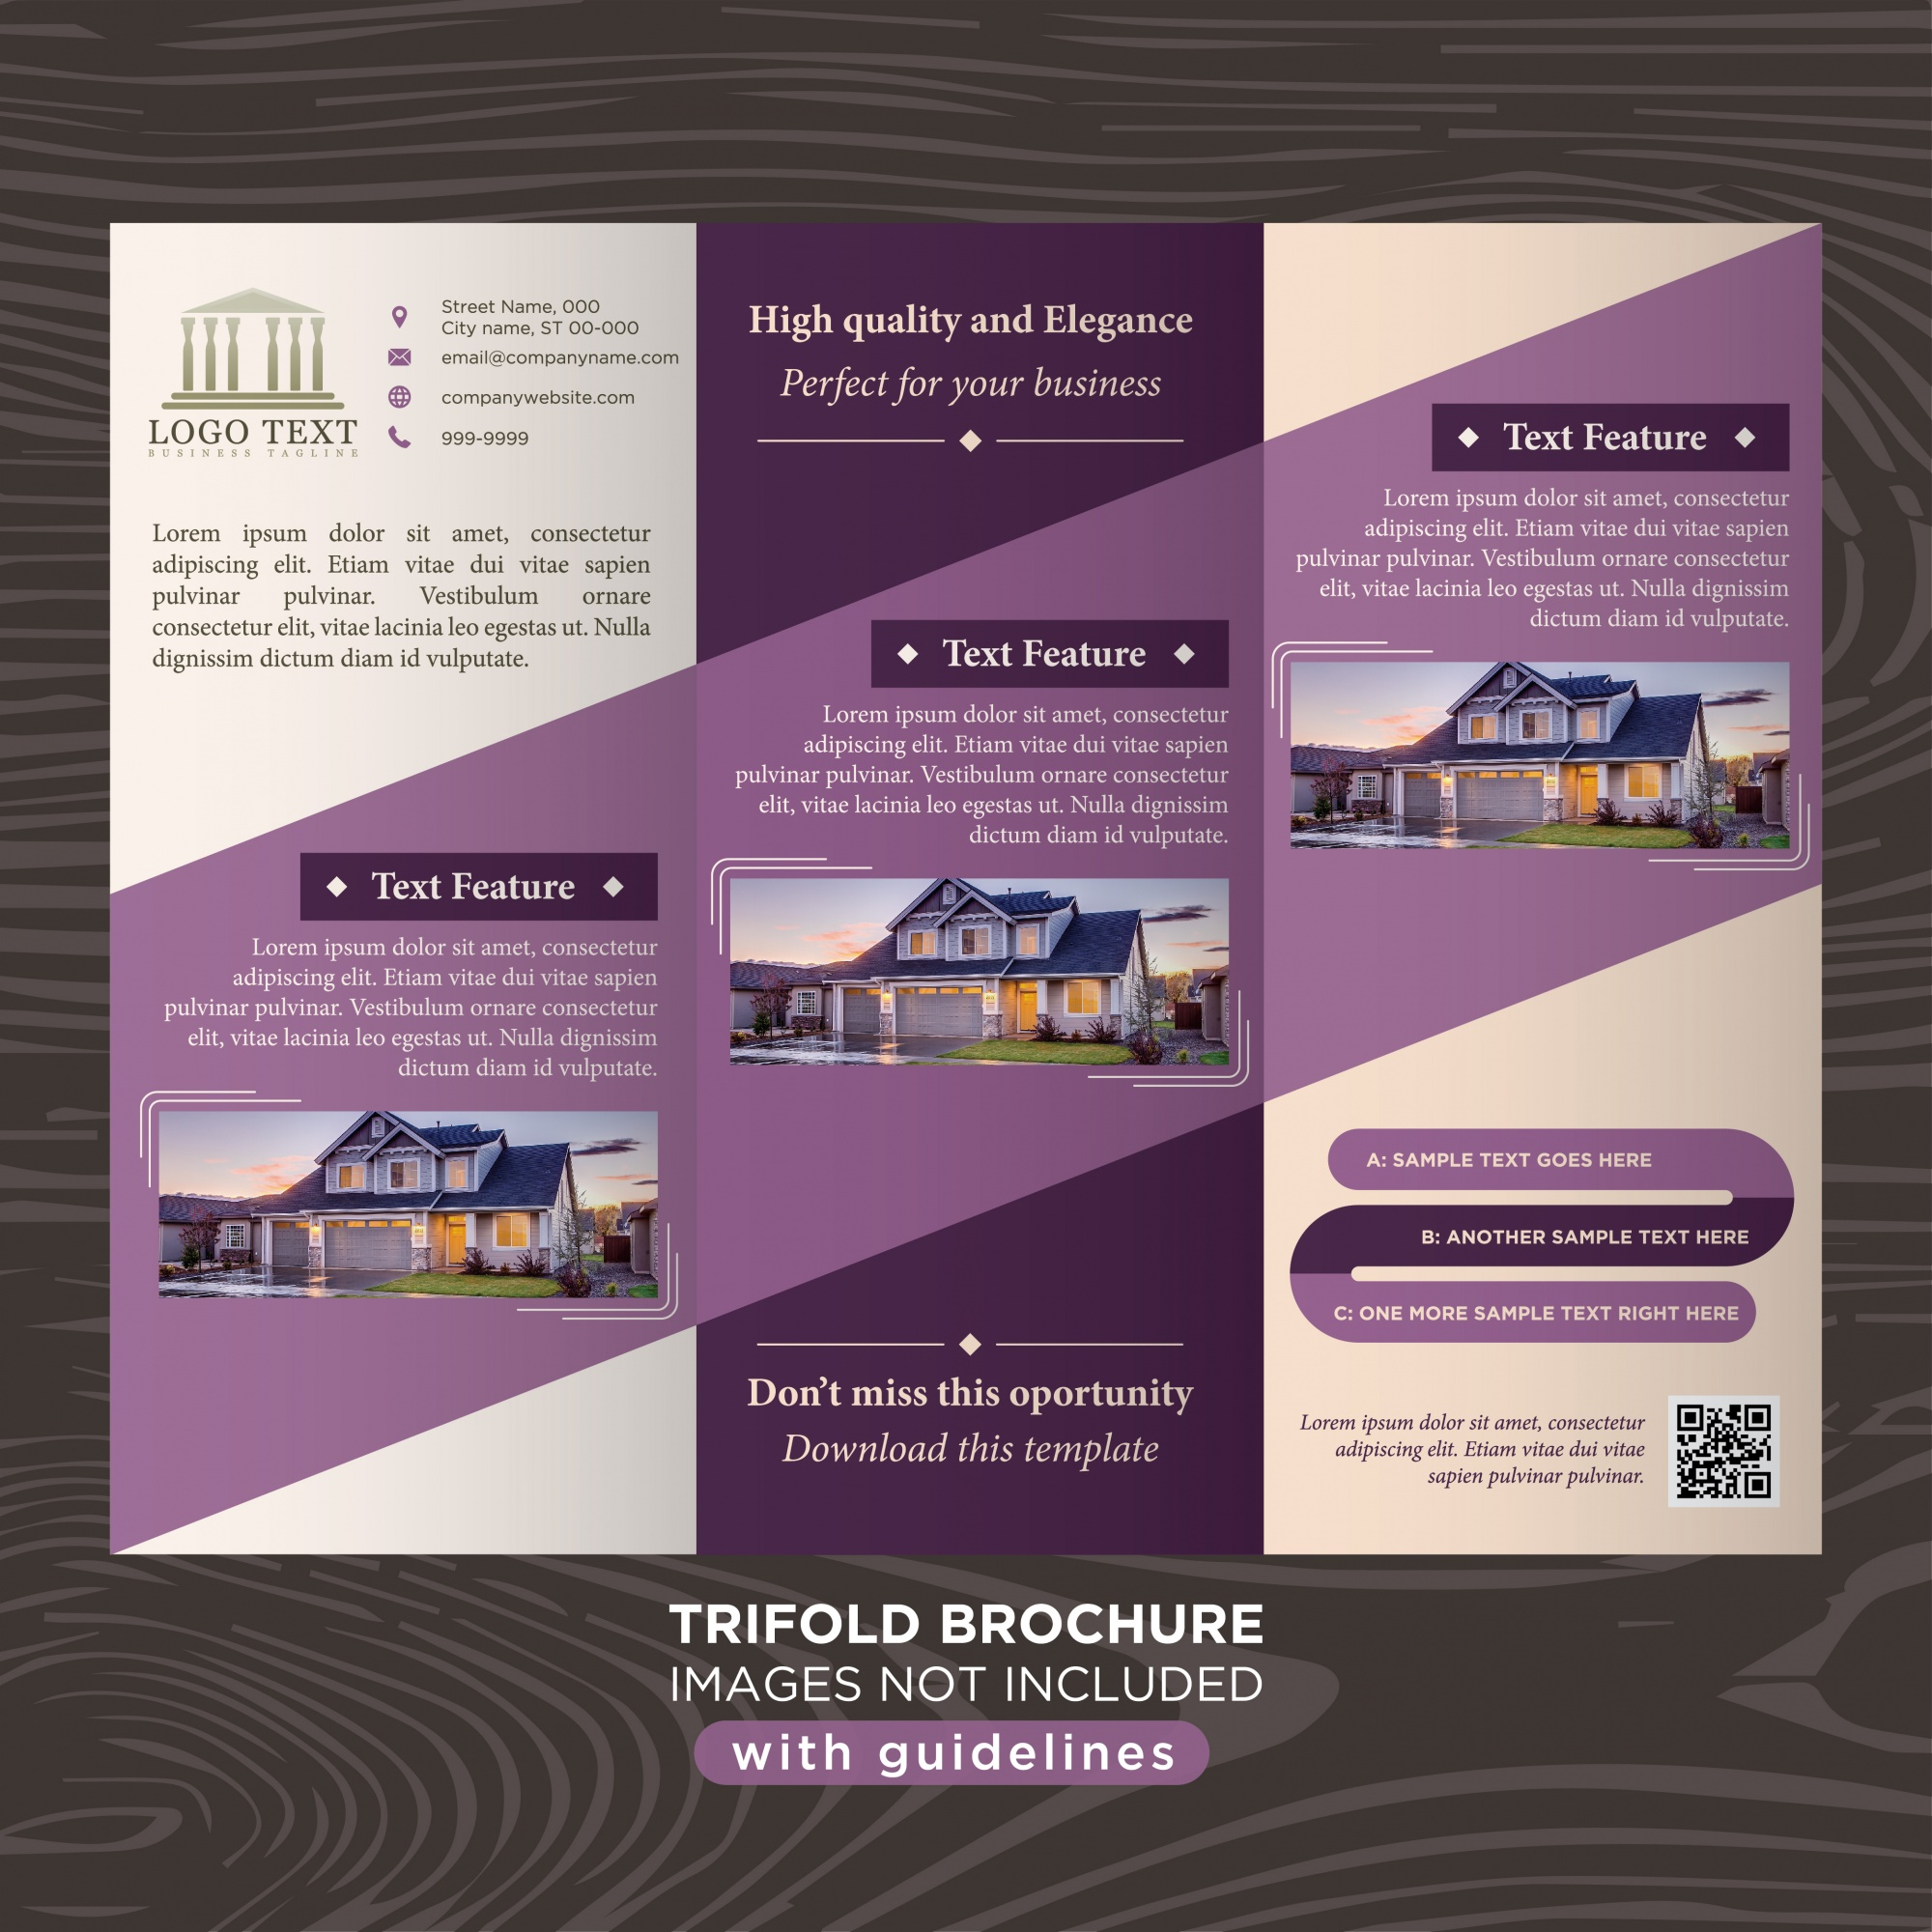 Elegant purple business design trifold brochure template